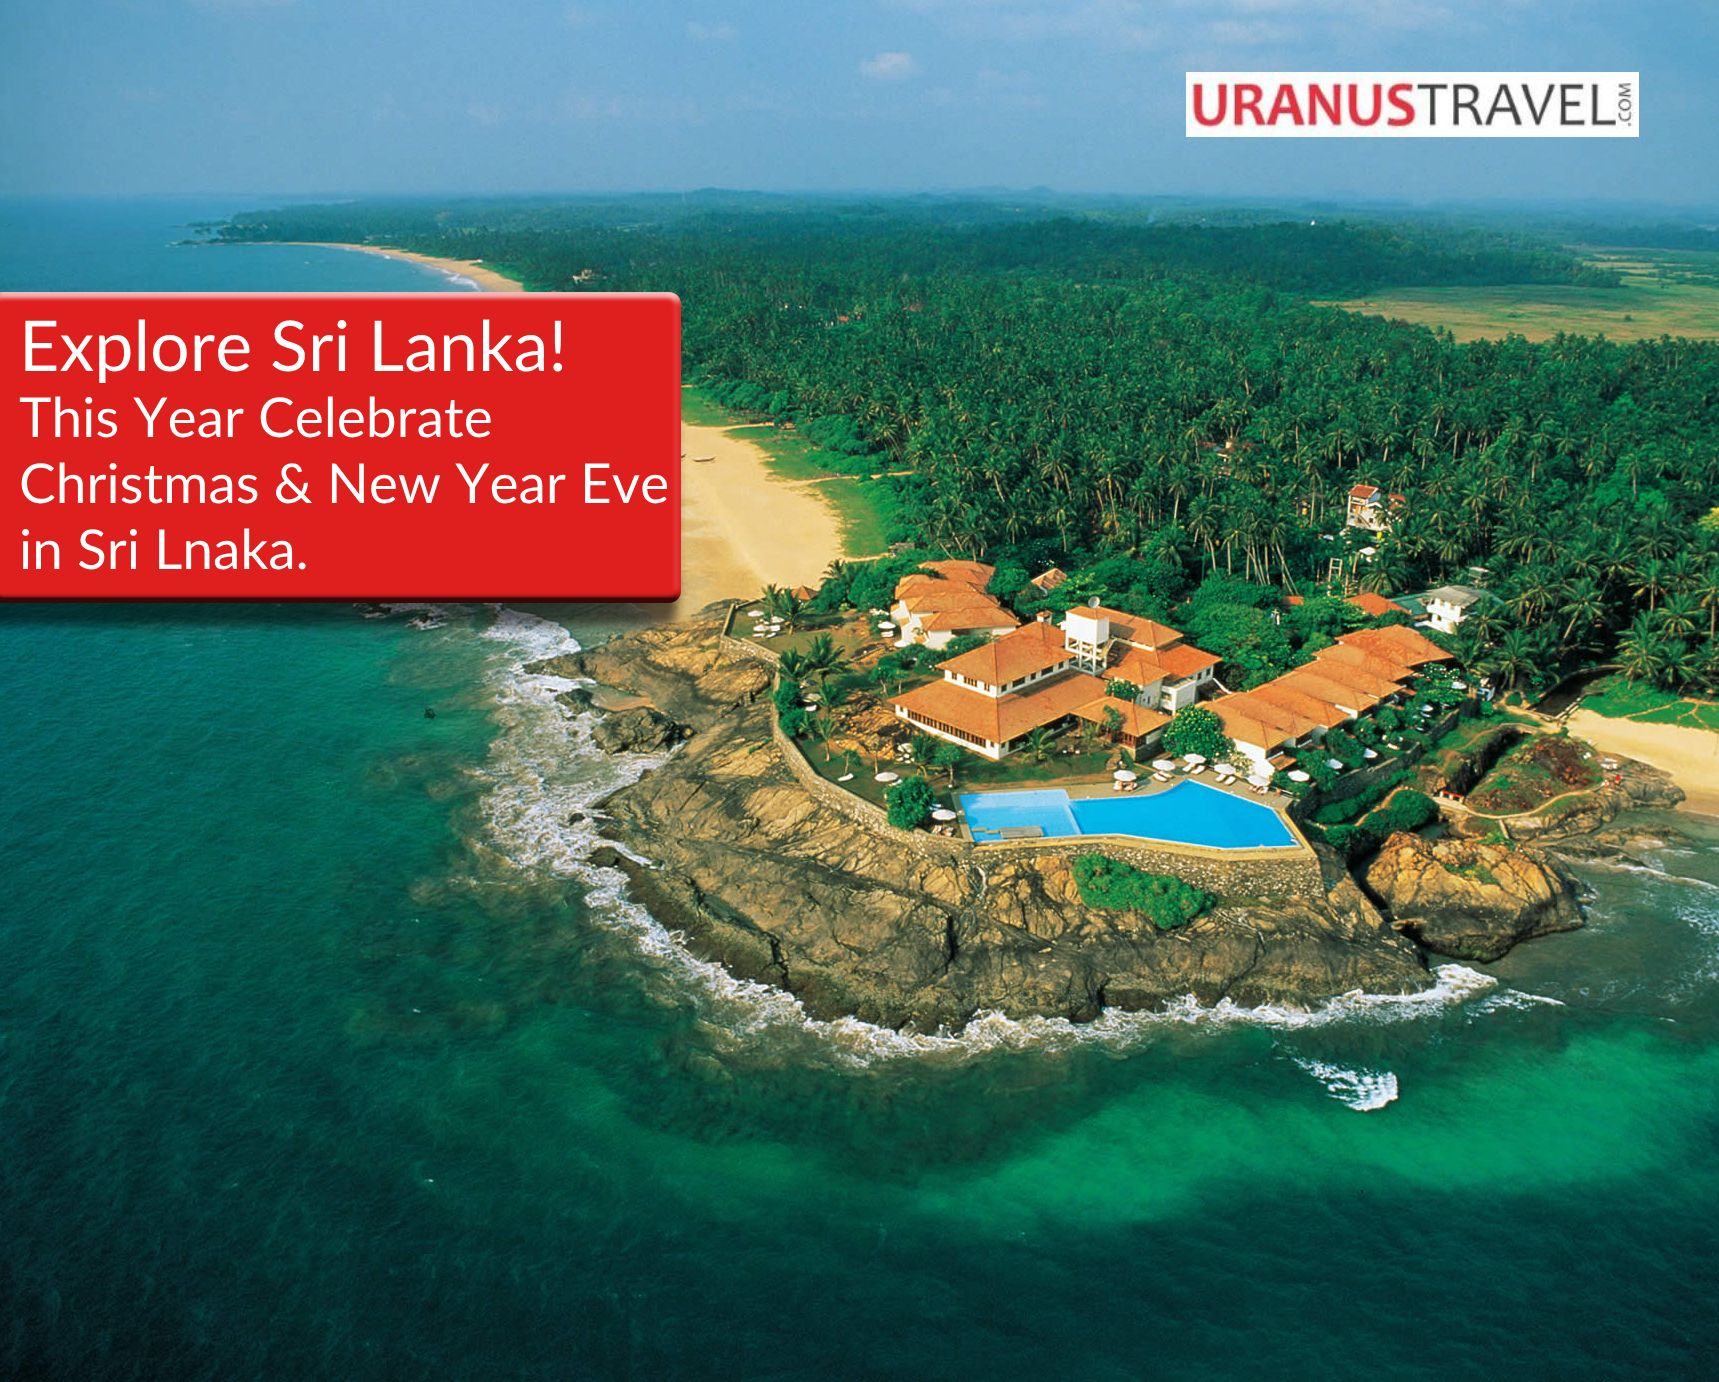 Exclusive Travel Package Deals to Sri Lanka for Christmas